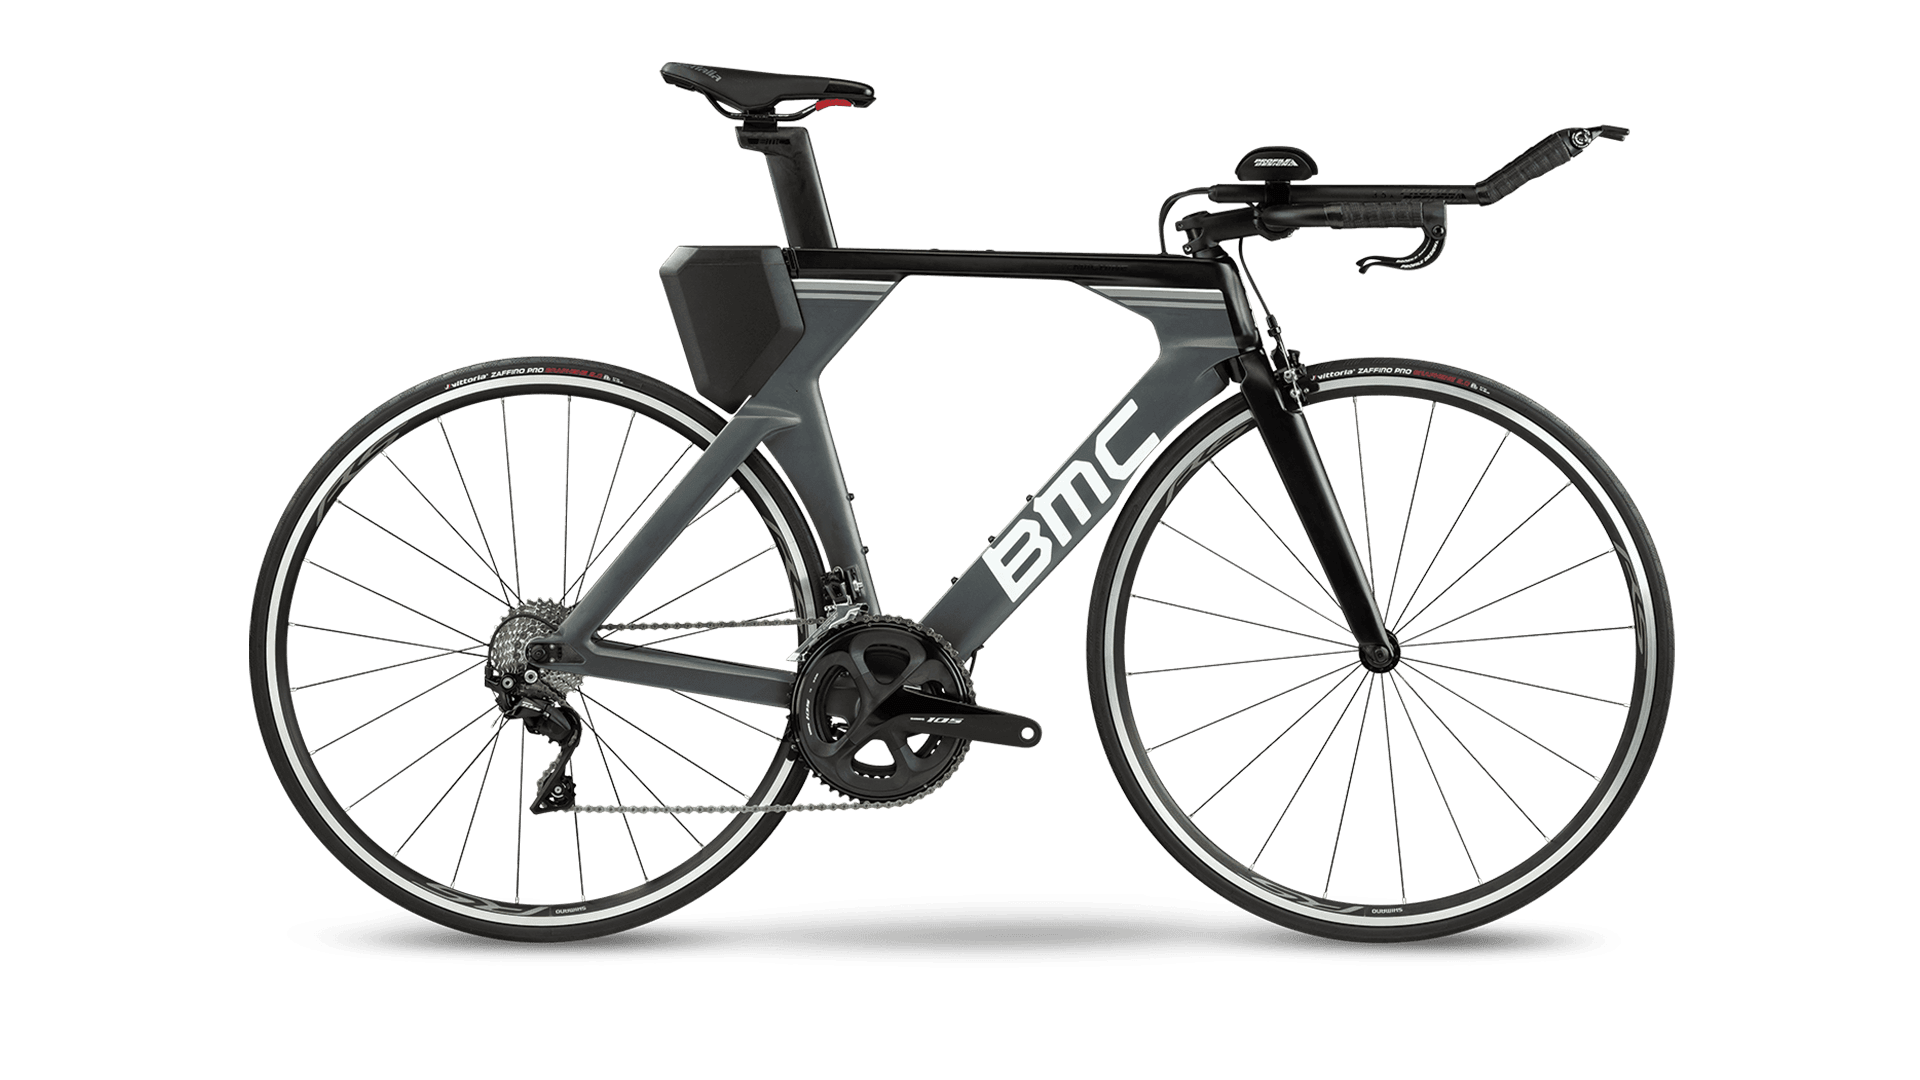 Bicicleta de Ruta Timemachine Two - BMC - BMC Colombia